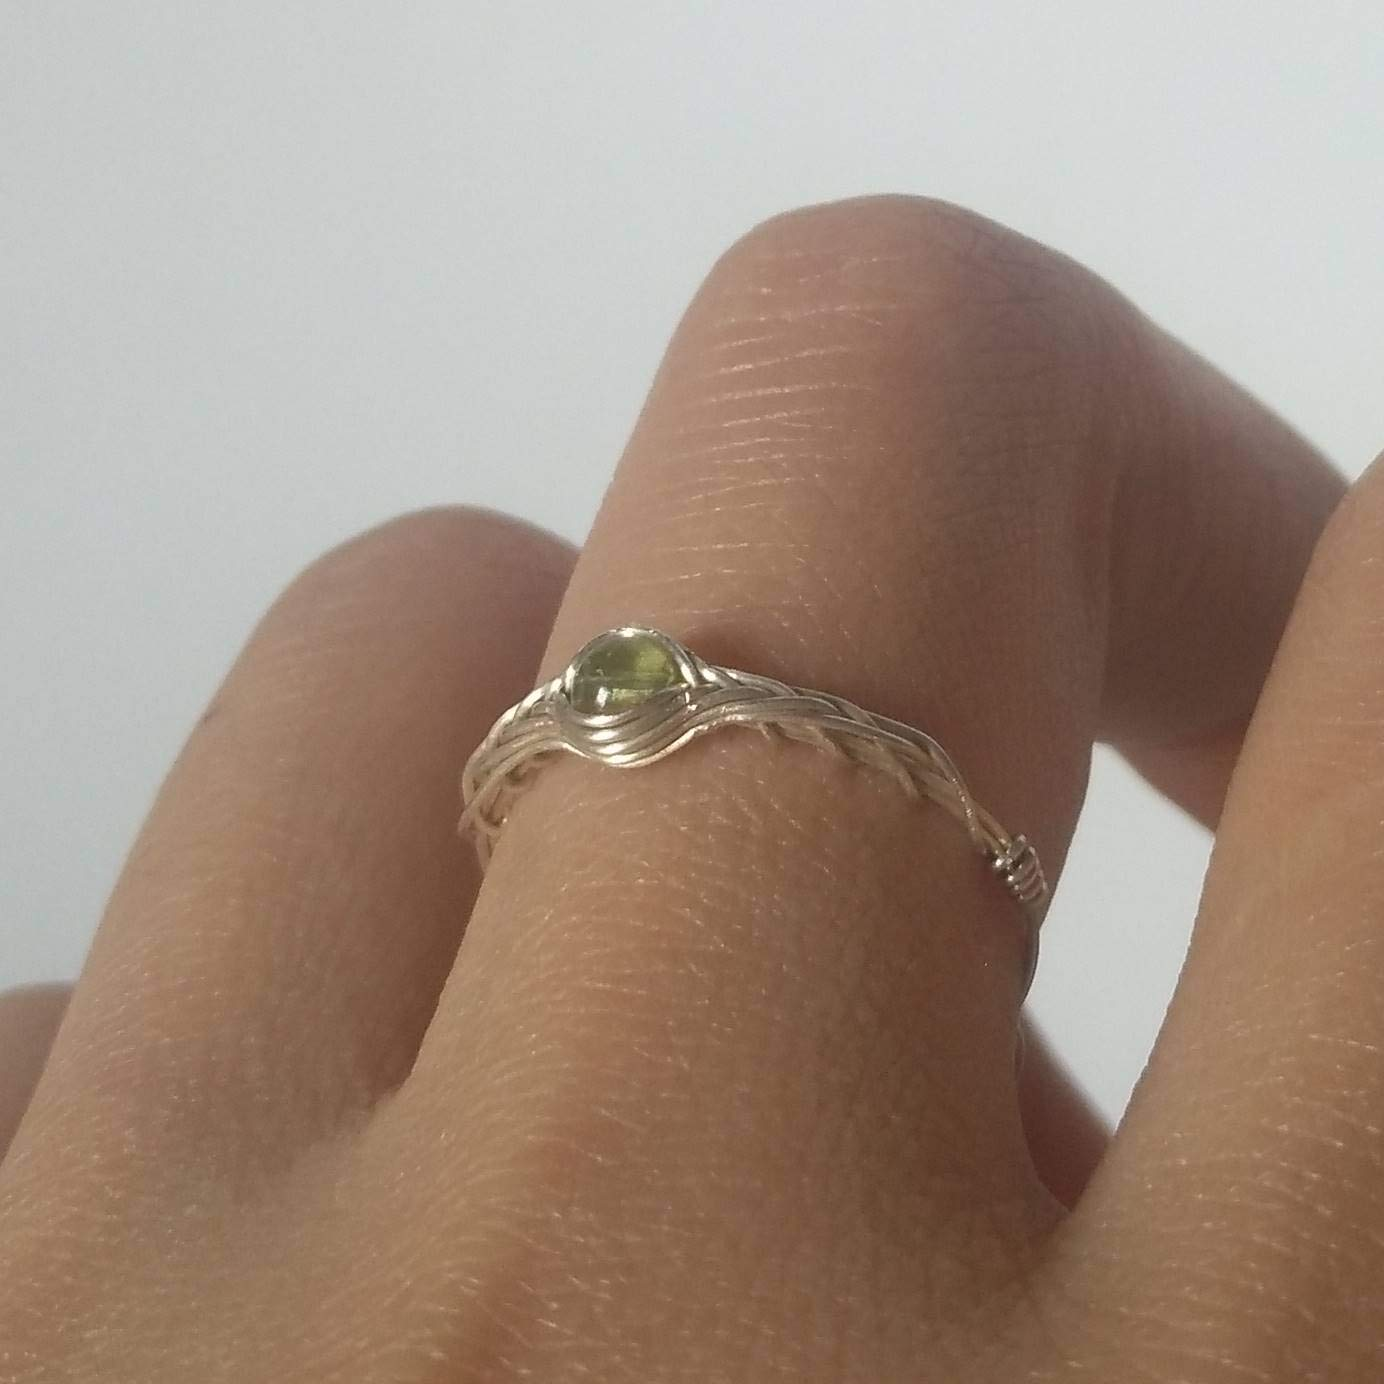 size12 Original Handmade 925 Sterling Silver Simple Peridot Ring By GRB ROY 5-12# available 1pc